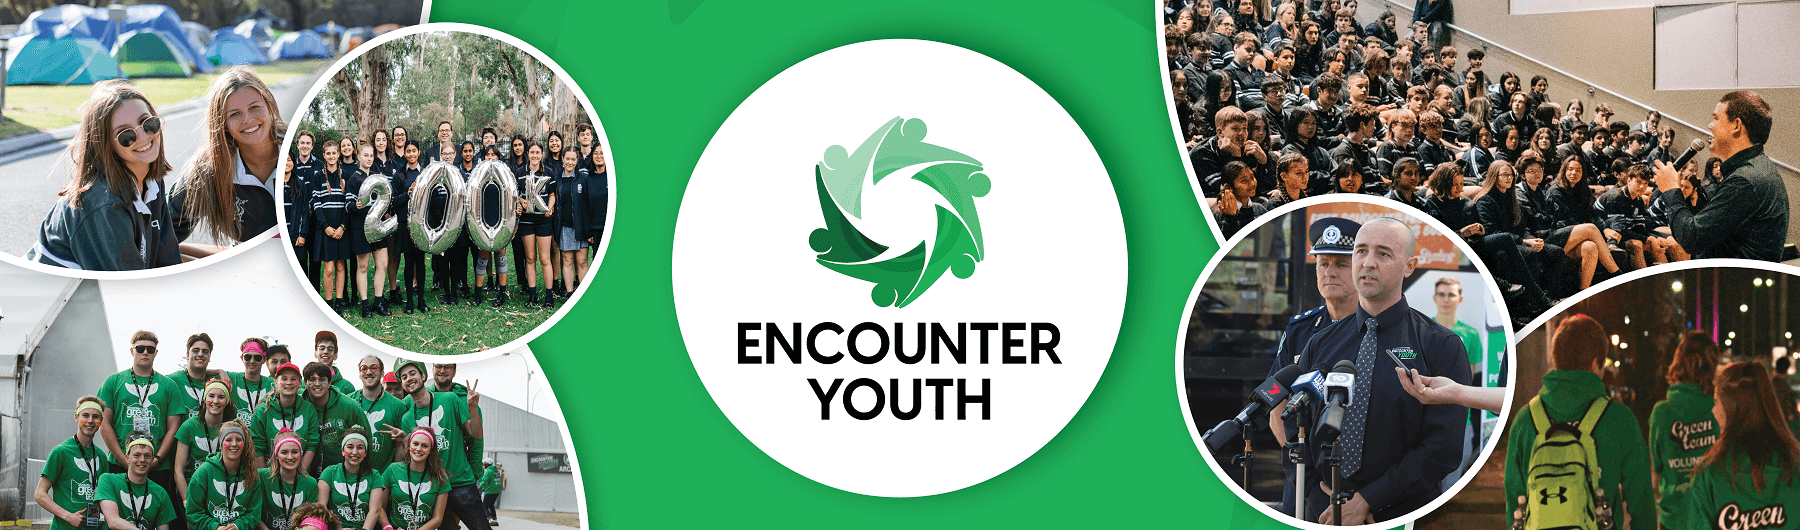 Find out more about Encounter Youth